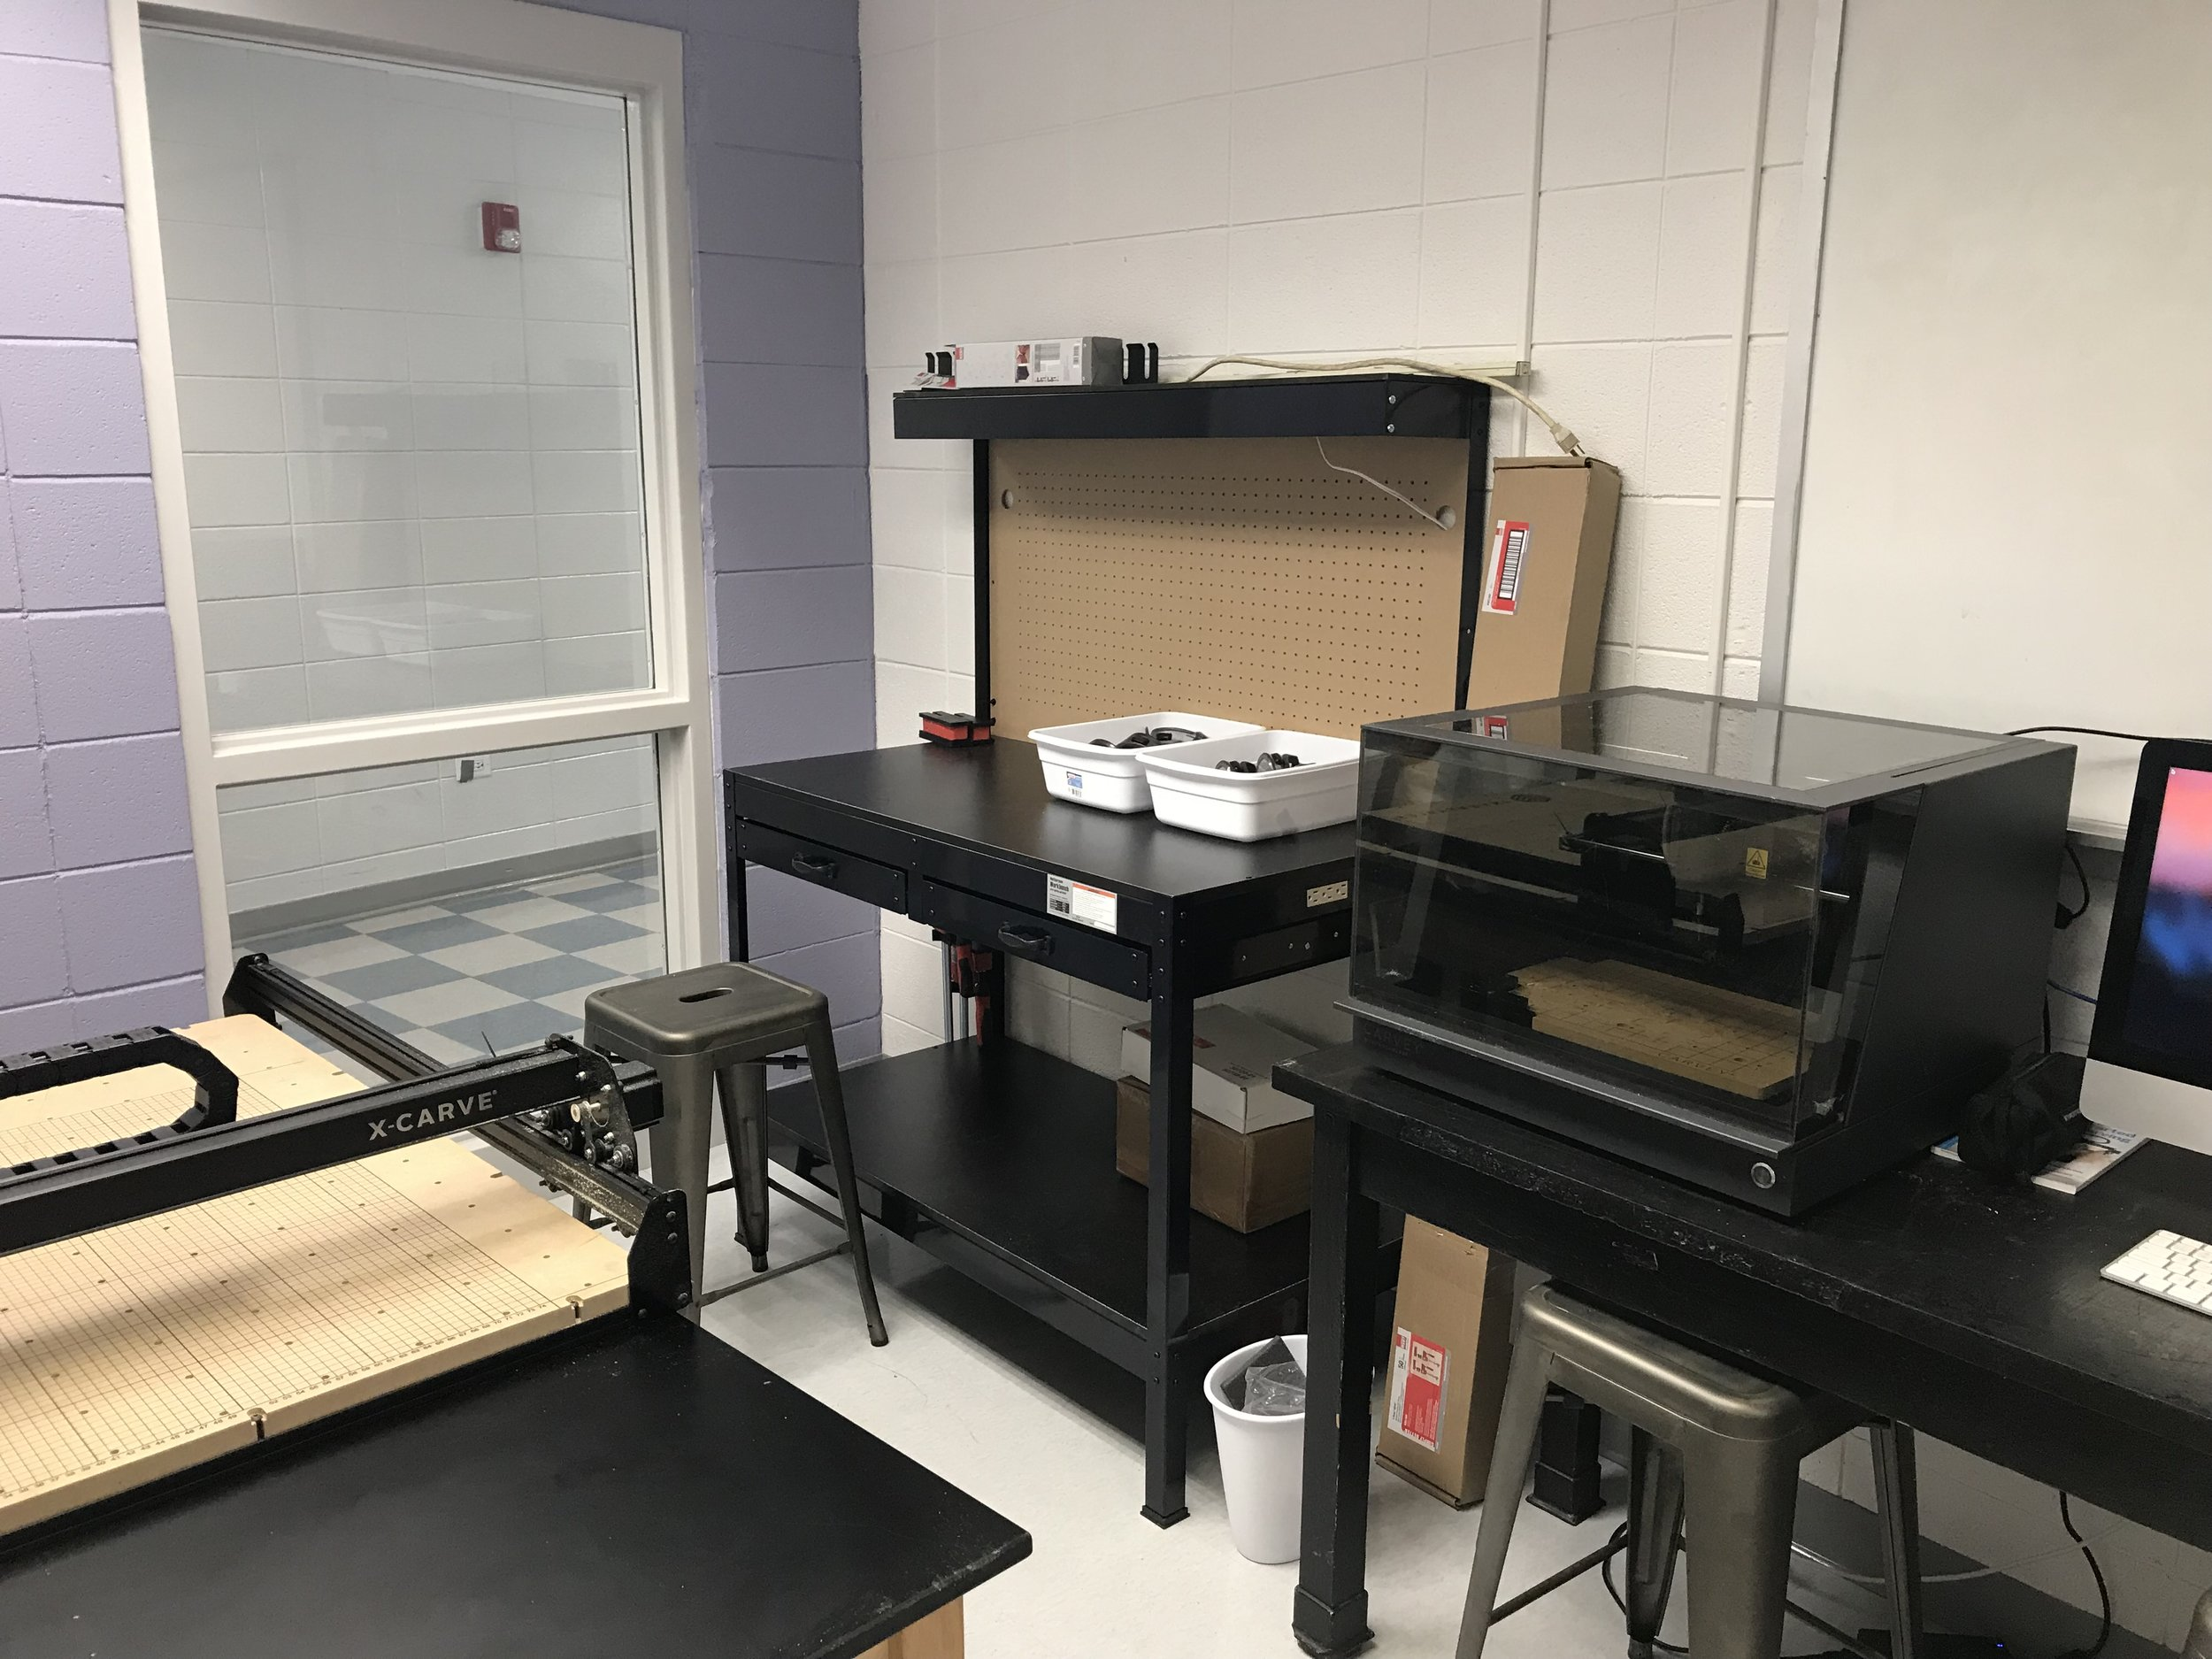 X-Carve and woodworking room after